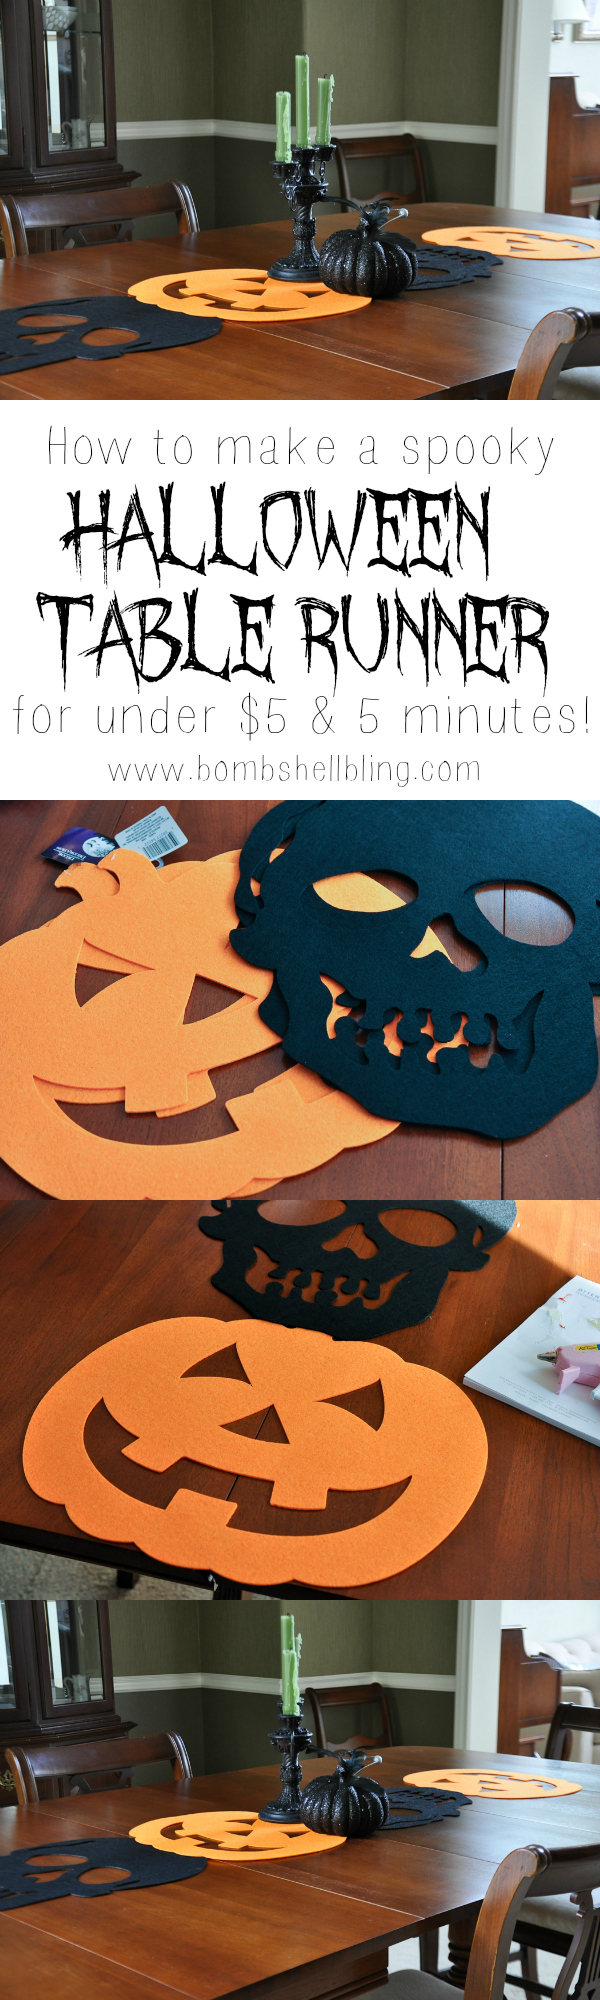 How to make a spooky Halloween table runner for under $5 & 5 minutes!